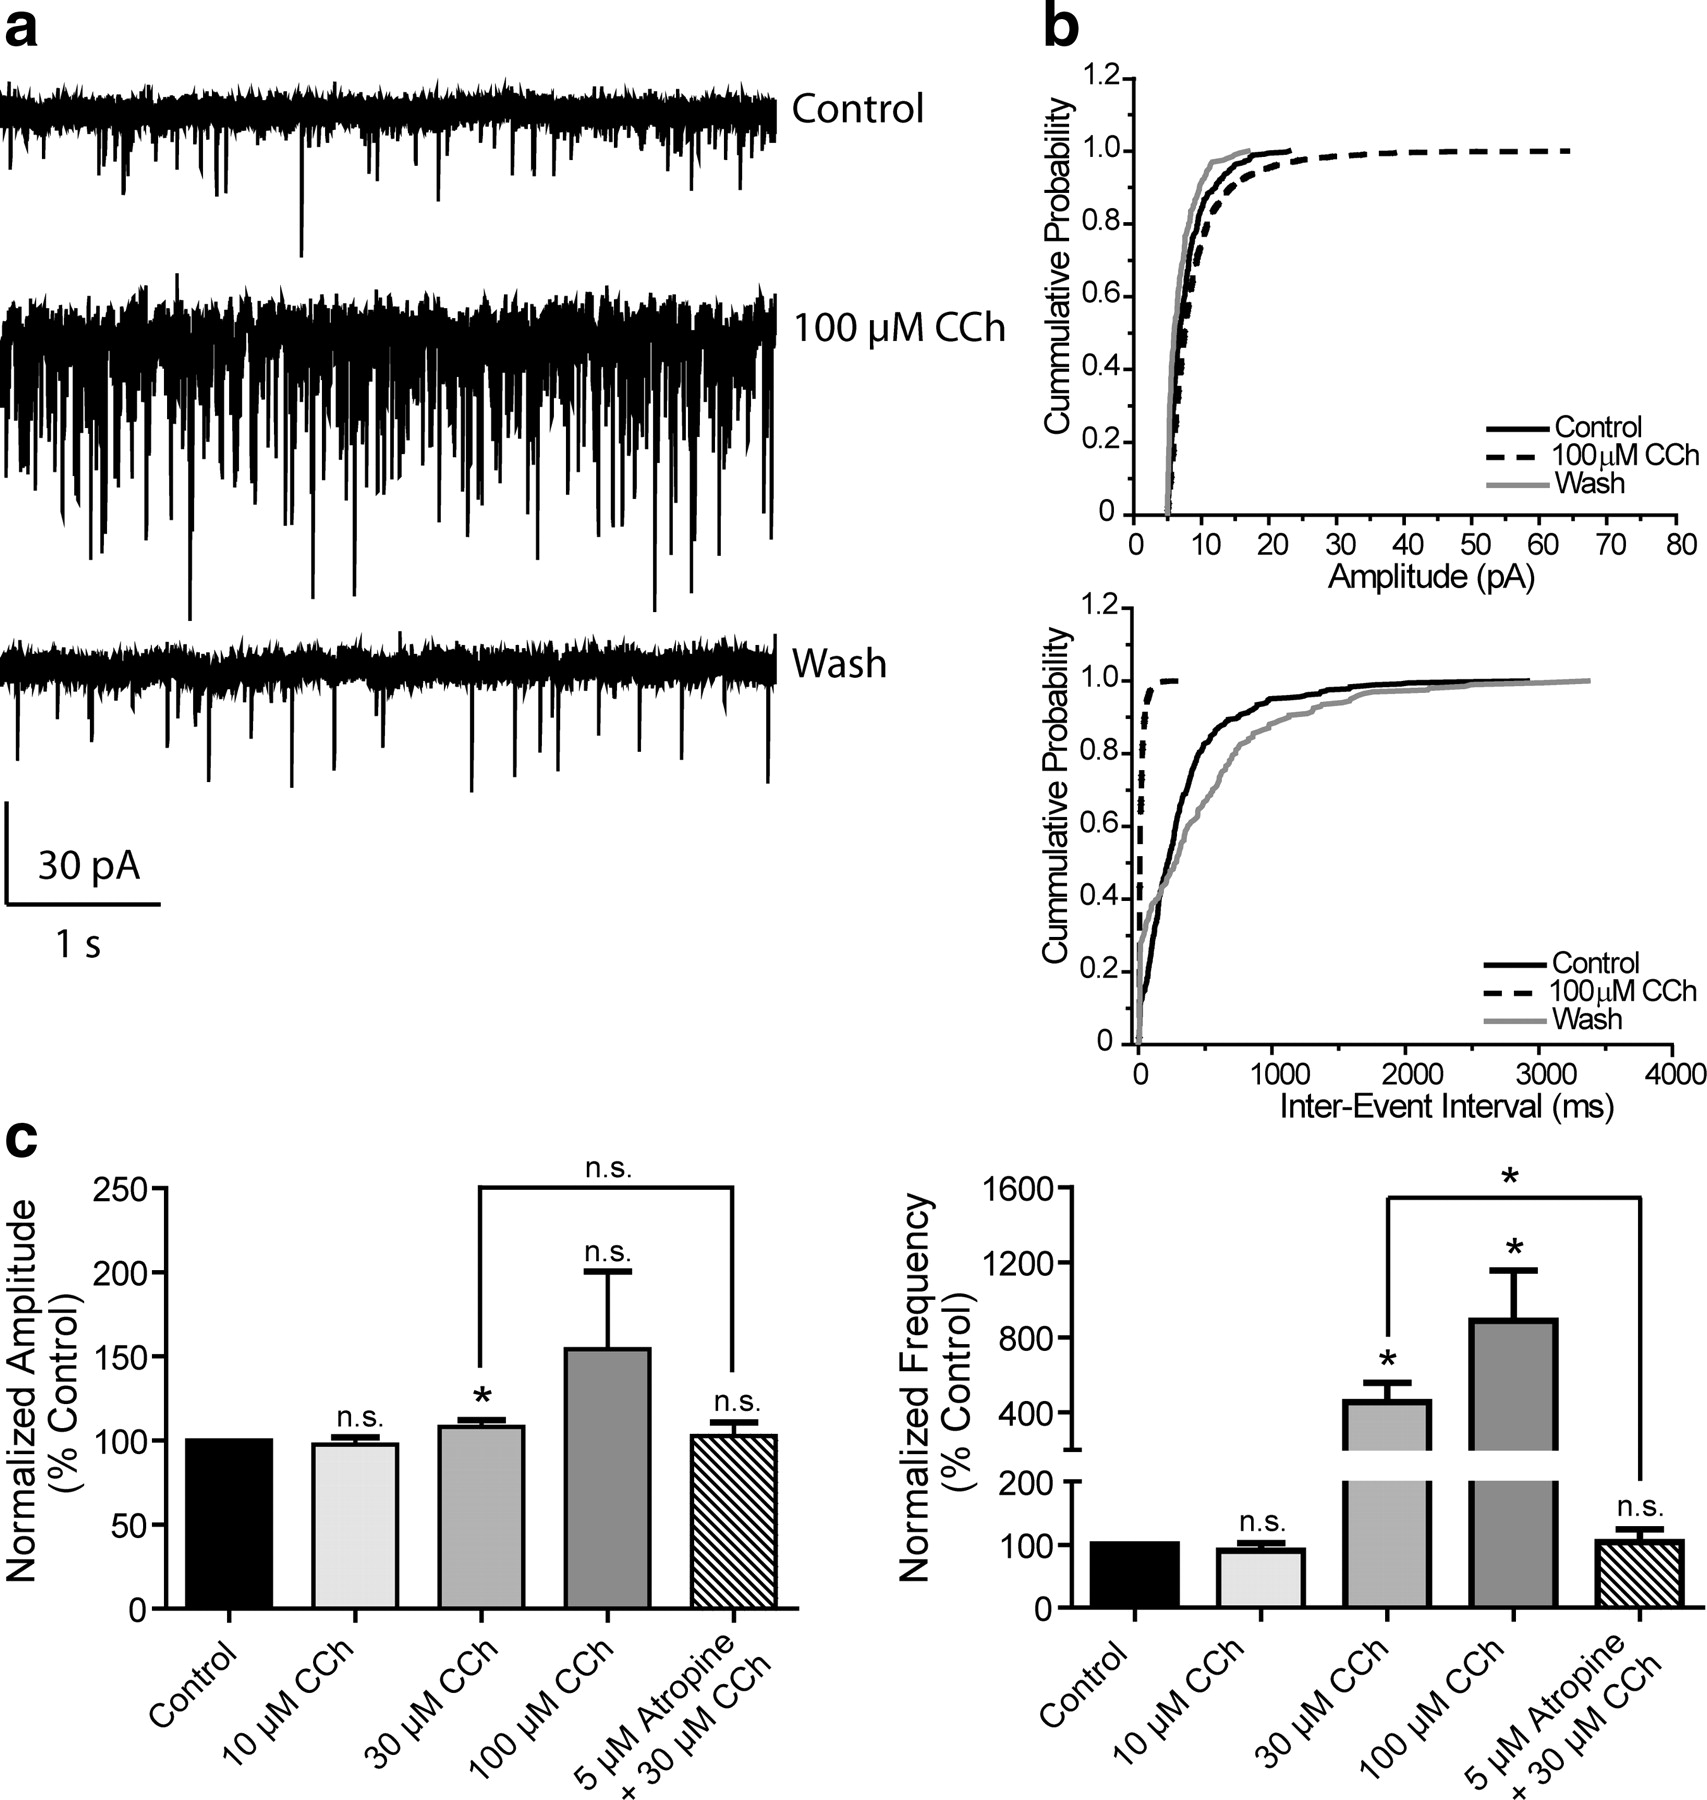 A Selective Allosteric Potentiator Of The M1 Muscarinic Acetylcholine Receptor Increases